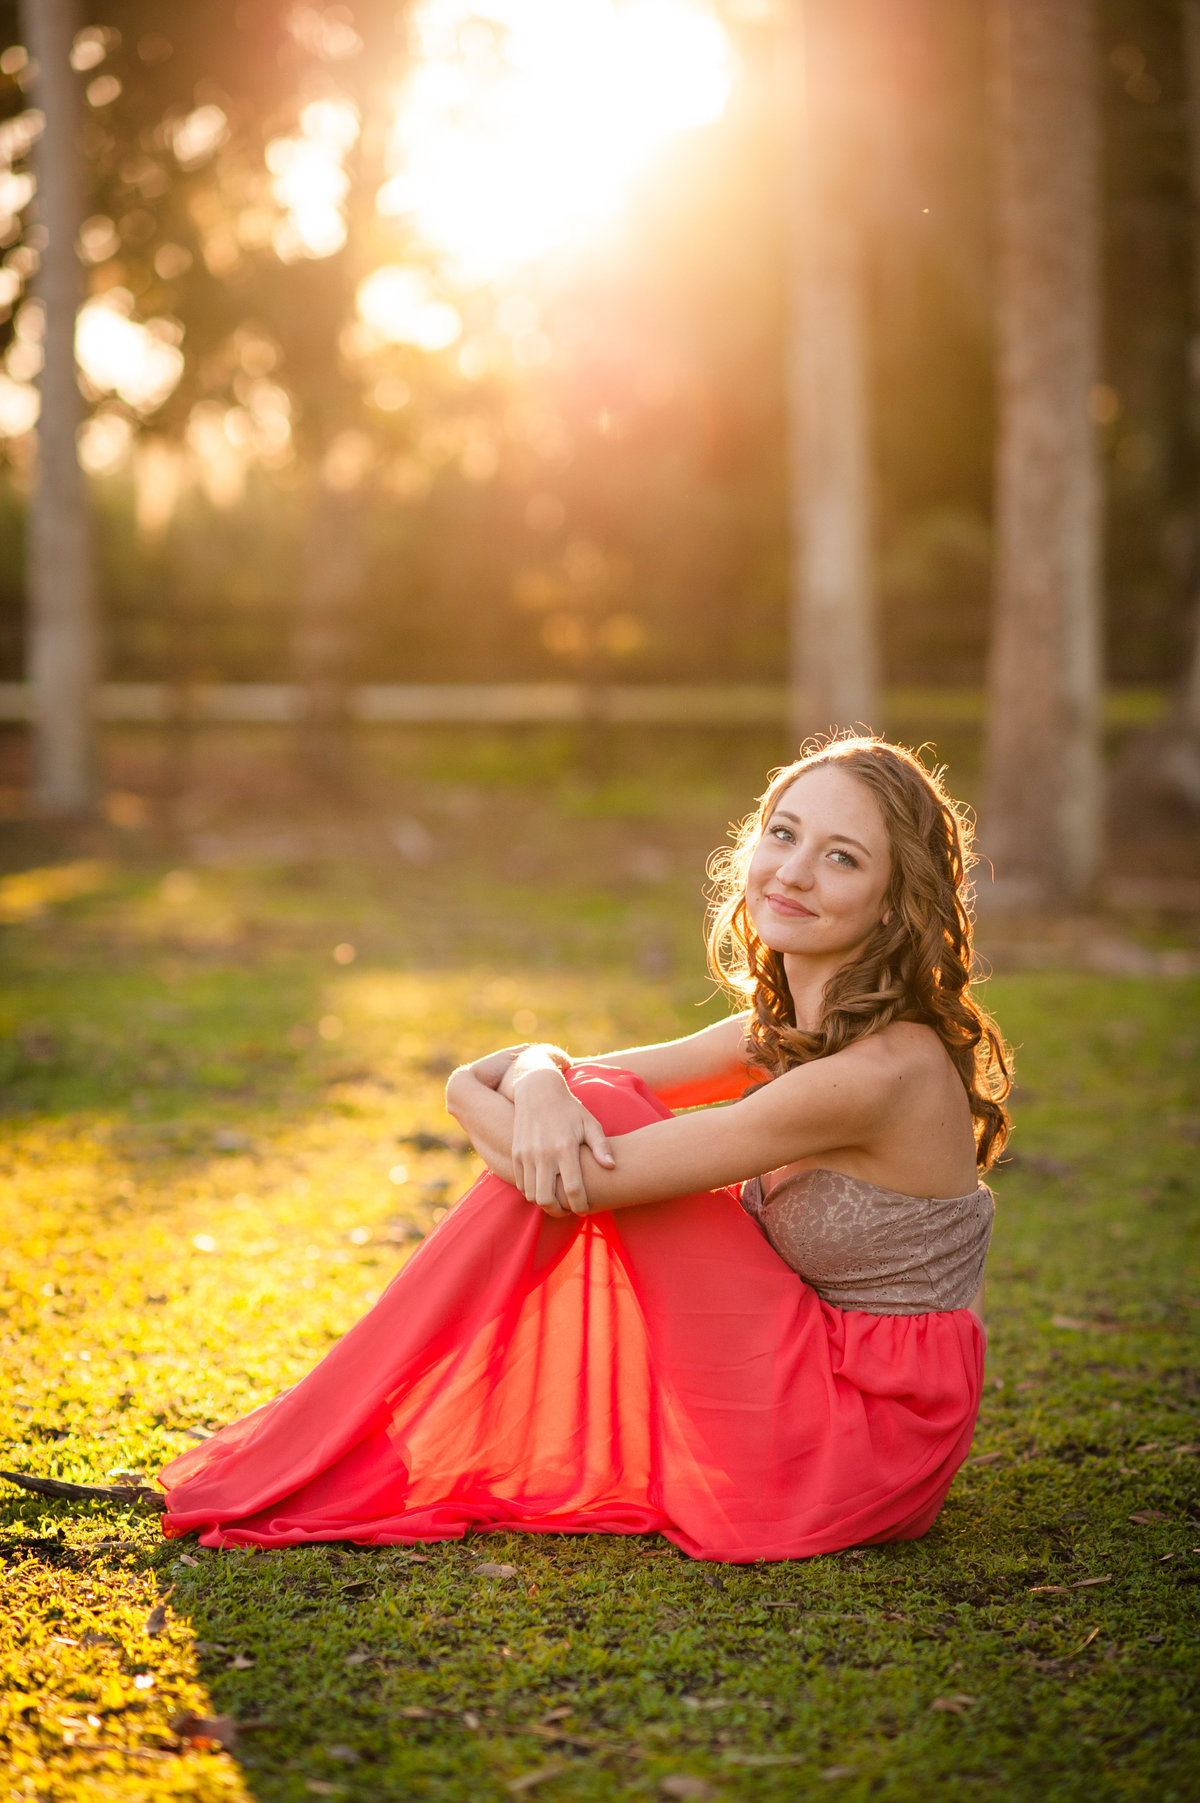 Ormond Beach senior portraits (2)